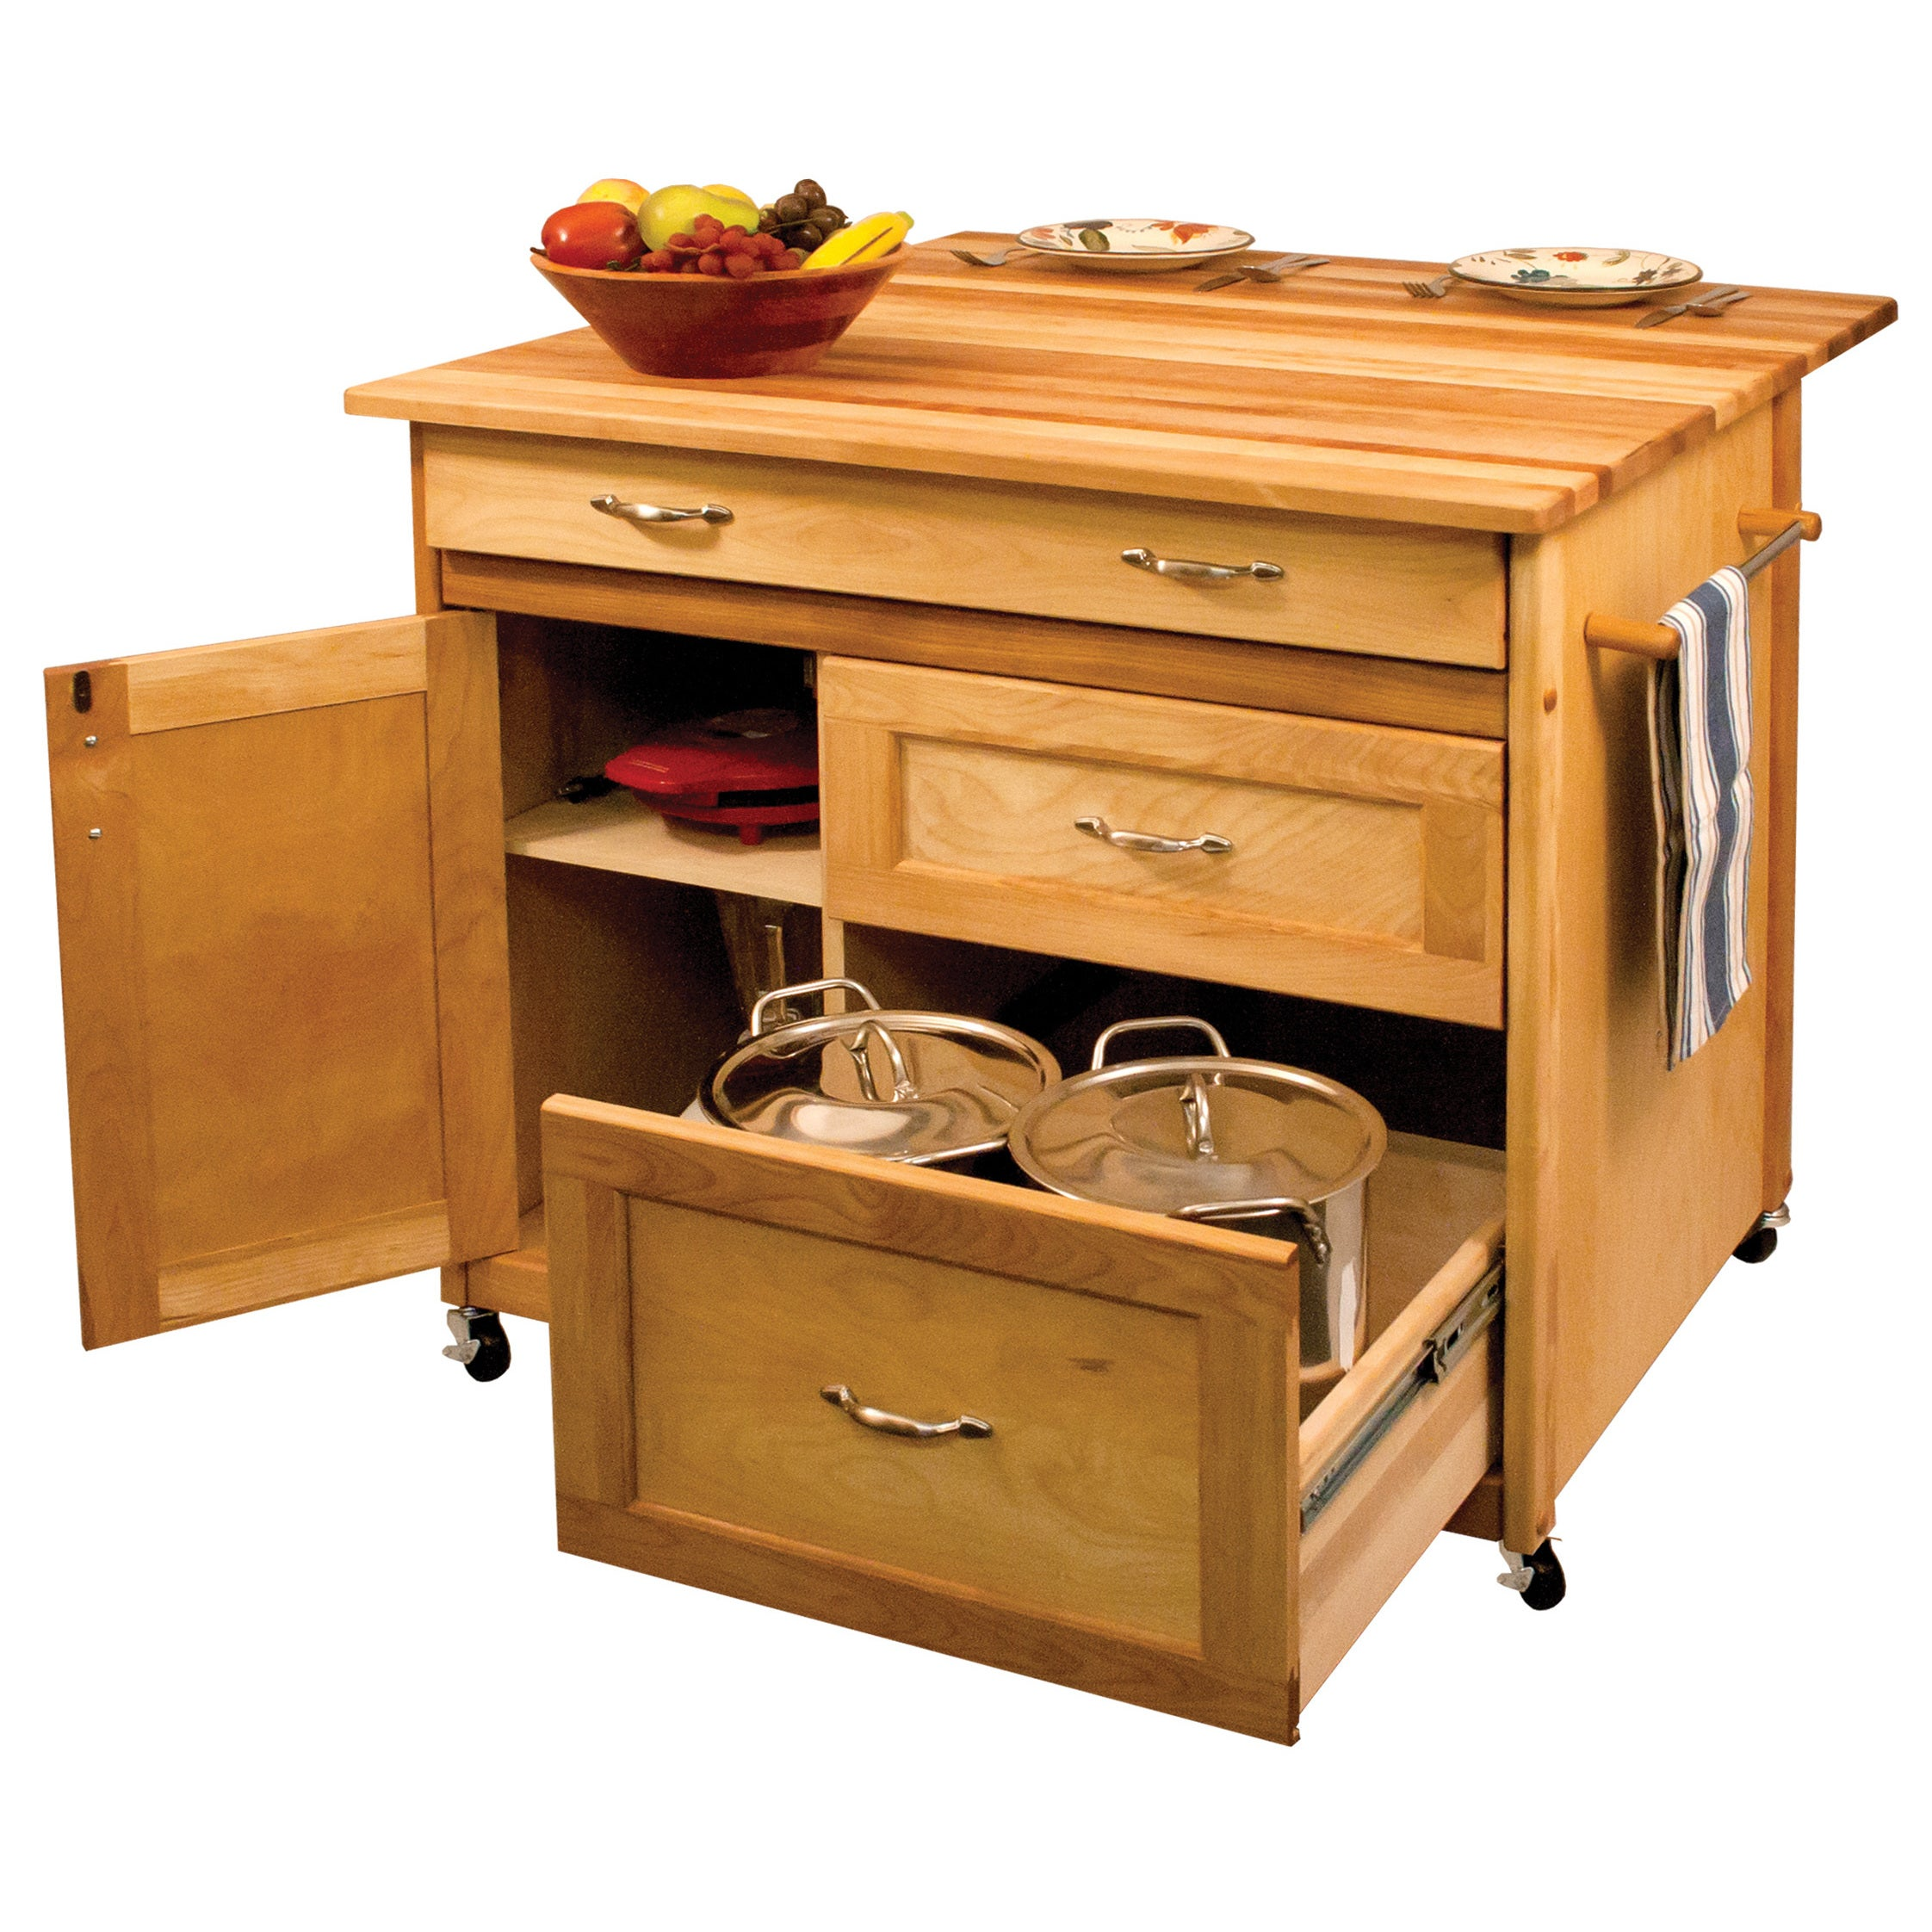 Merveilleux Shop Deep Drawer Hardwood Kitchen Island   Free Shipping Today    Overstock.com   9392423